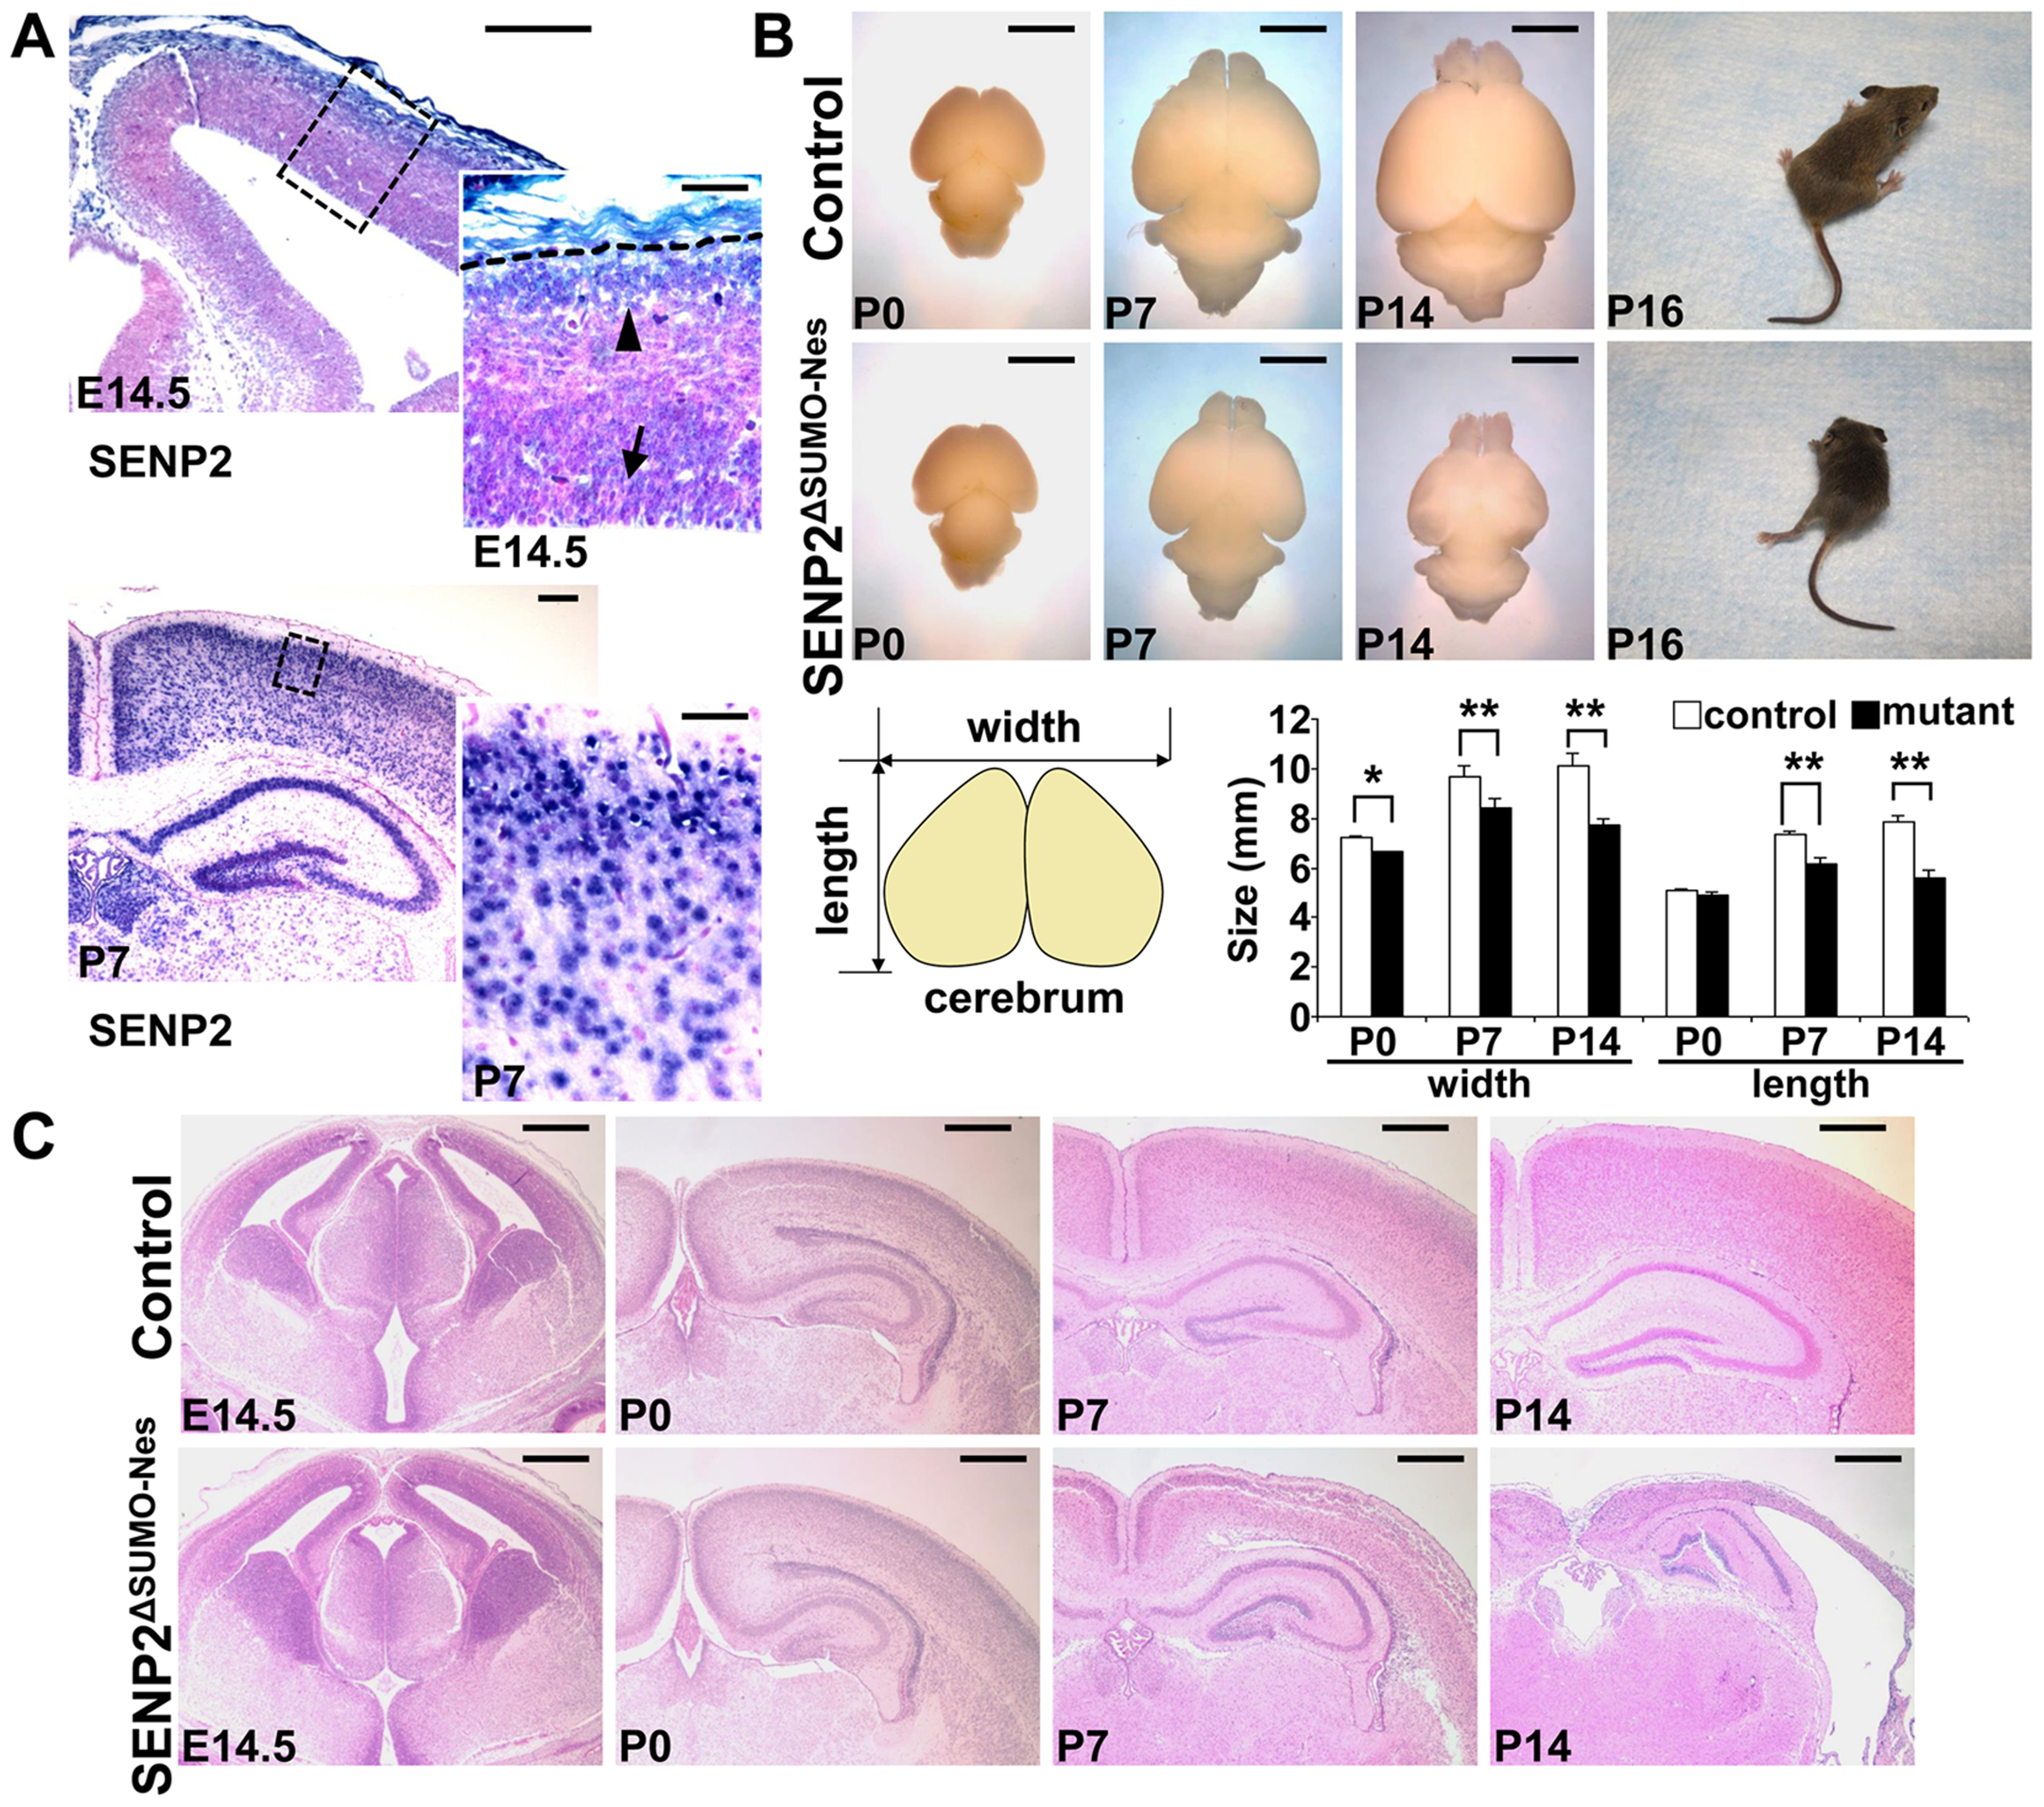 Disruption of SENP2 in the neural progenitors causes neurodegeneration.